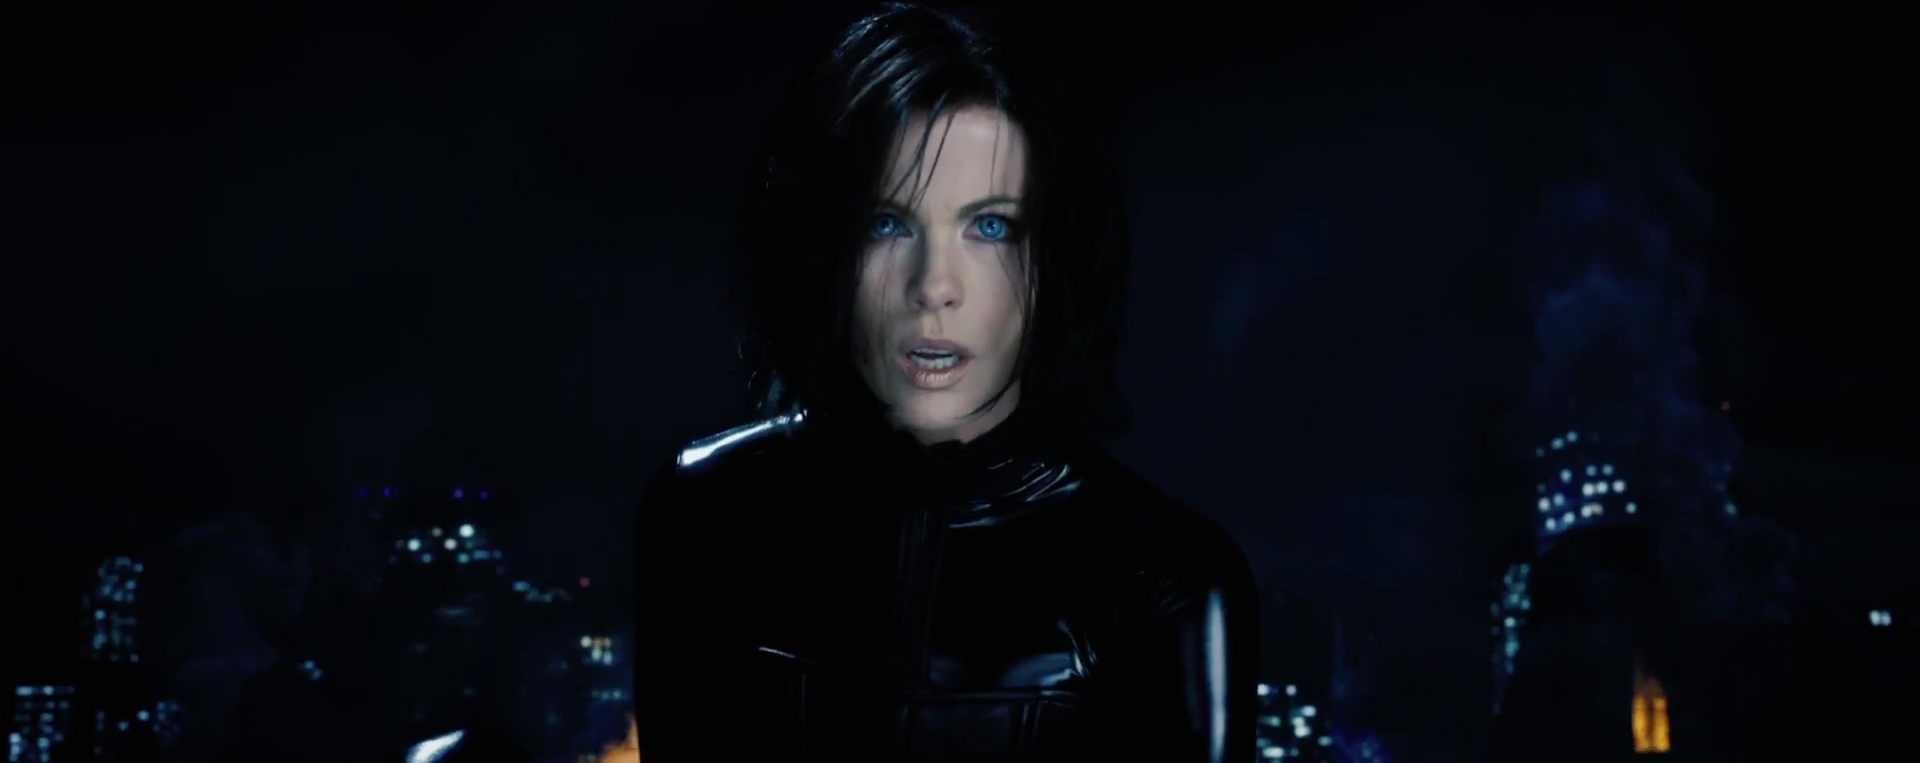 Kate Beckinsale embraces the darkness in 'Underworld: Blood Wars'